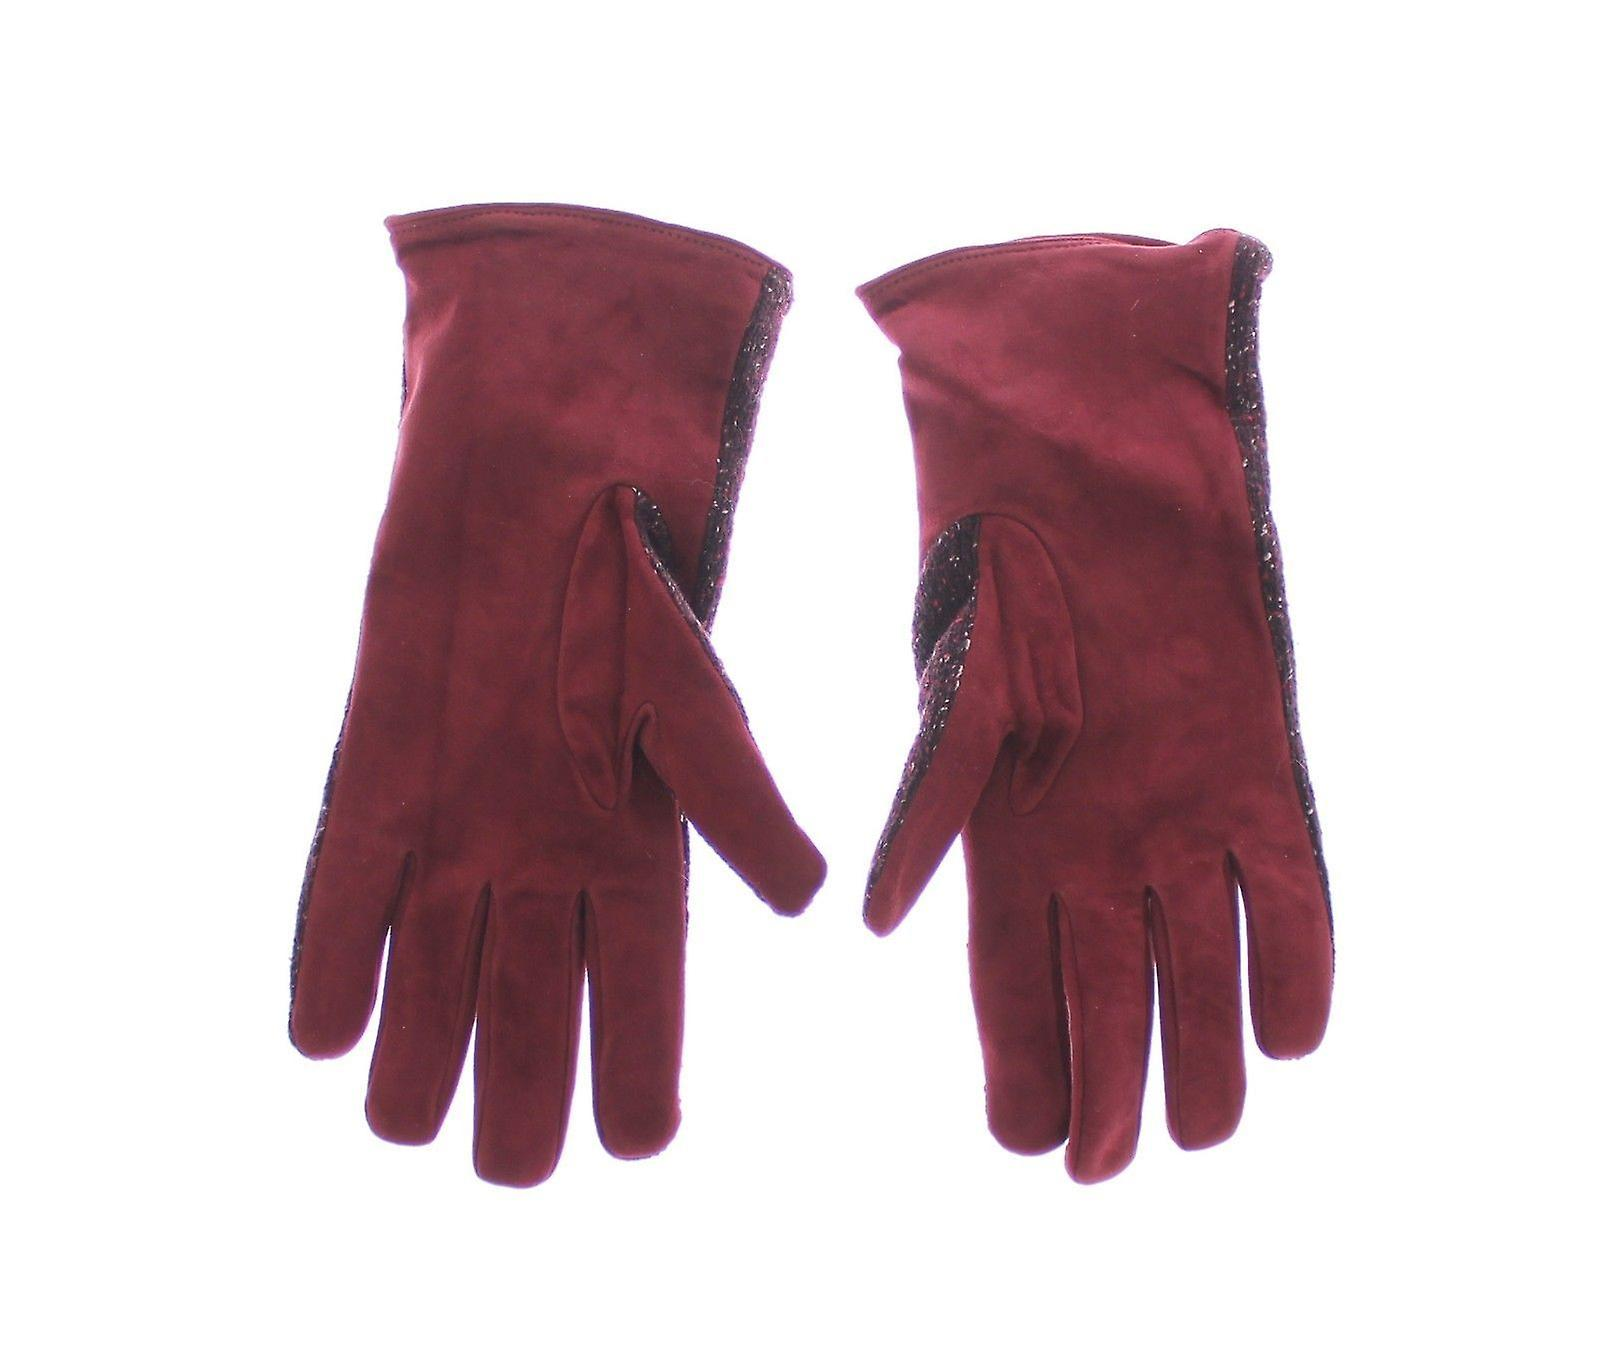 Mens red fabric leather wrist gloves hand